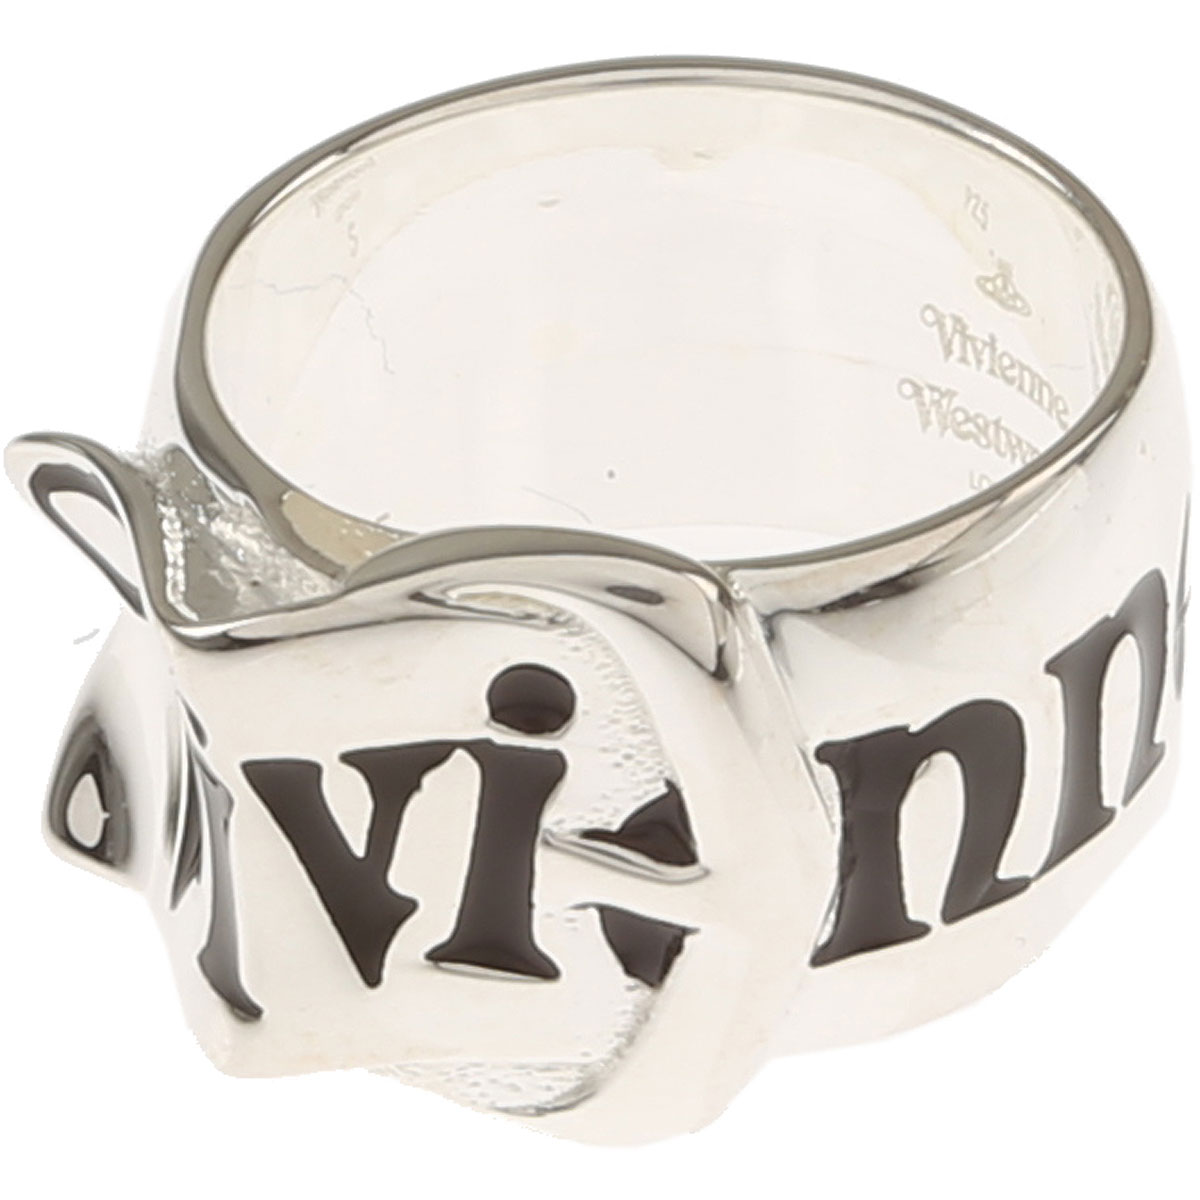 Image of Vivienne Westwood Ring for Men, Silver, Silver, 2017, Small Medium Large